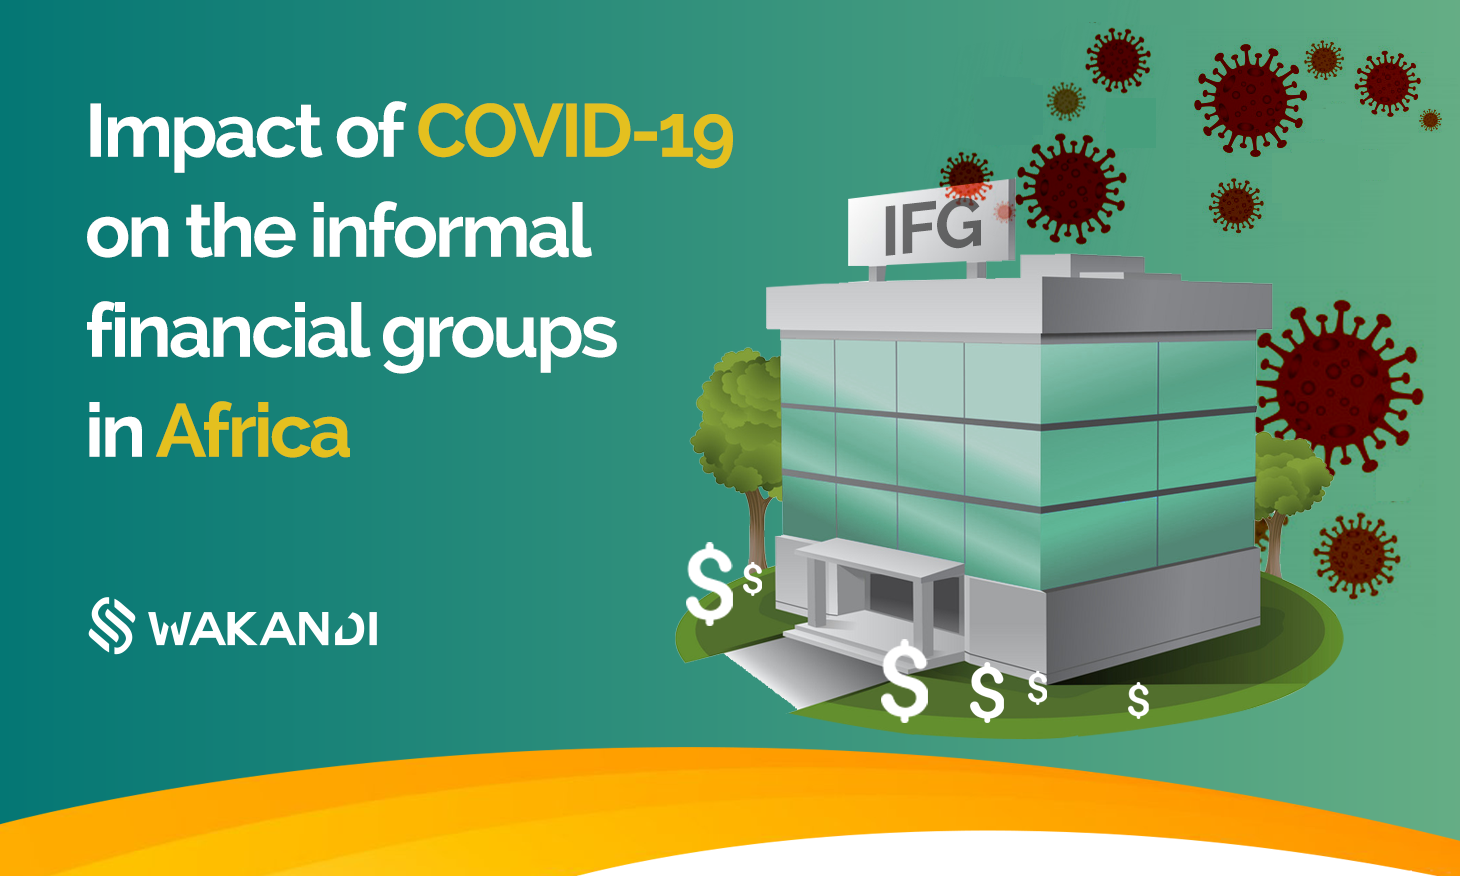 Impact of COVID-19 on savings groups in Africa